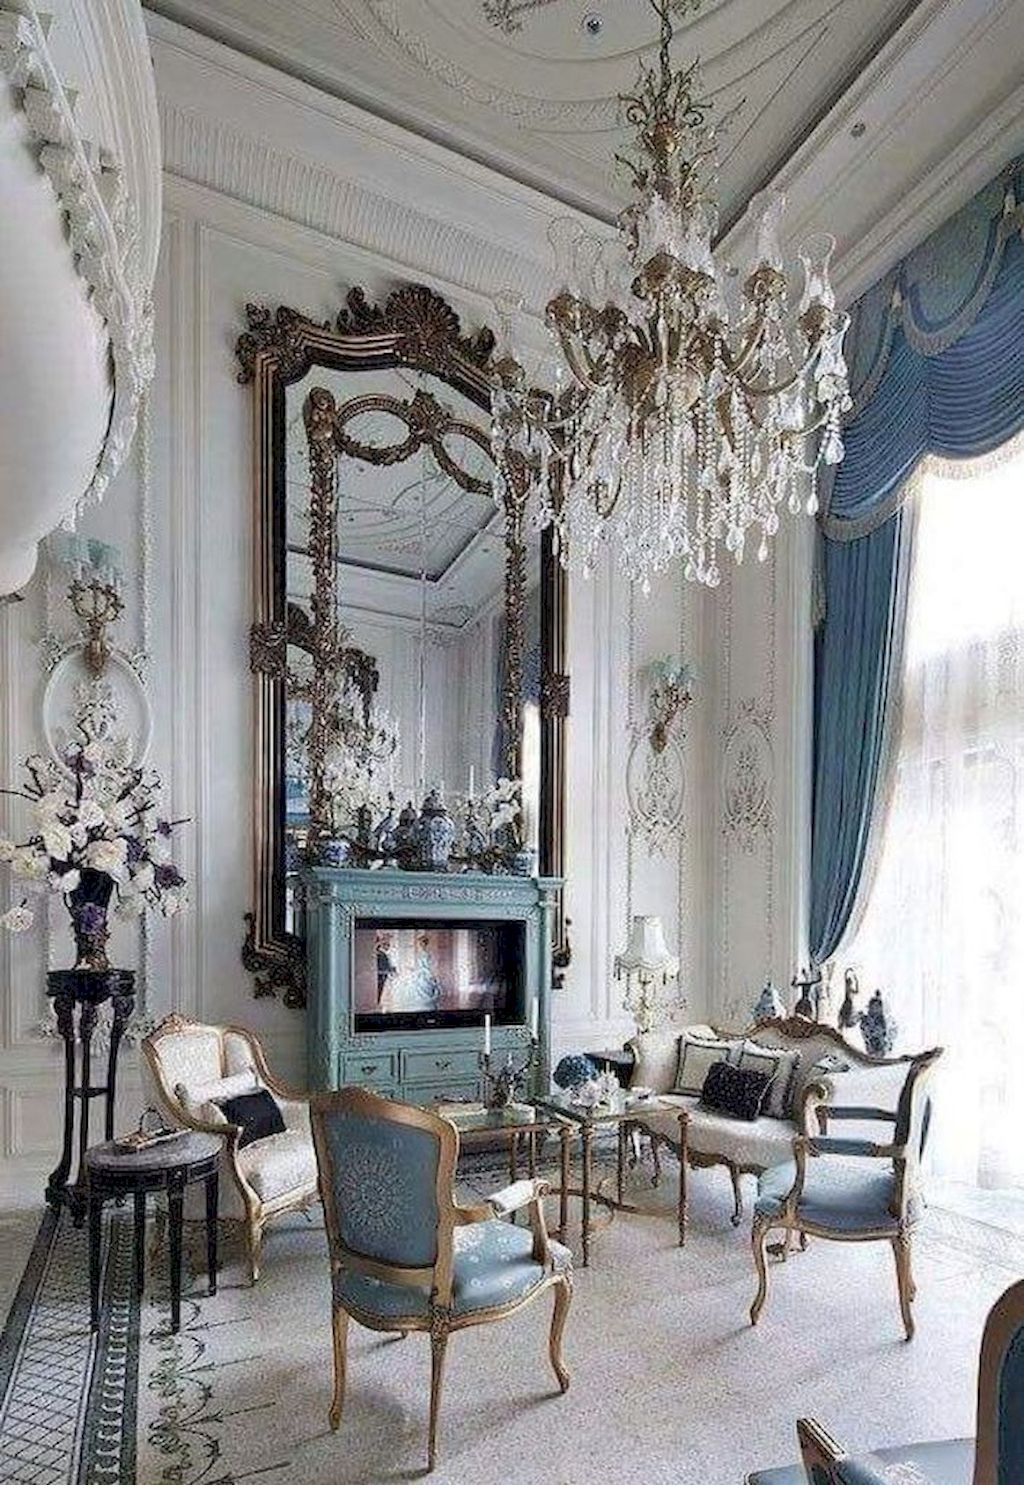 20 Beautiful French Country Living Room Decor Ideas | French ...